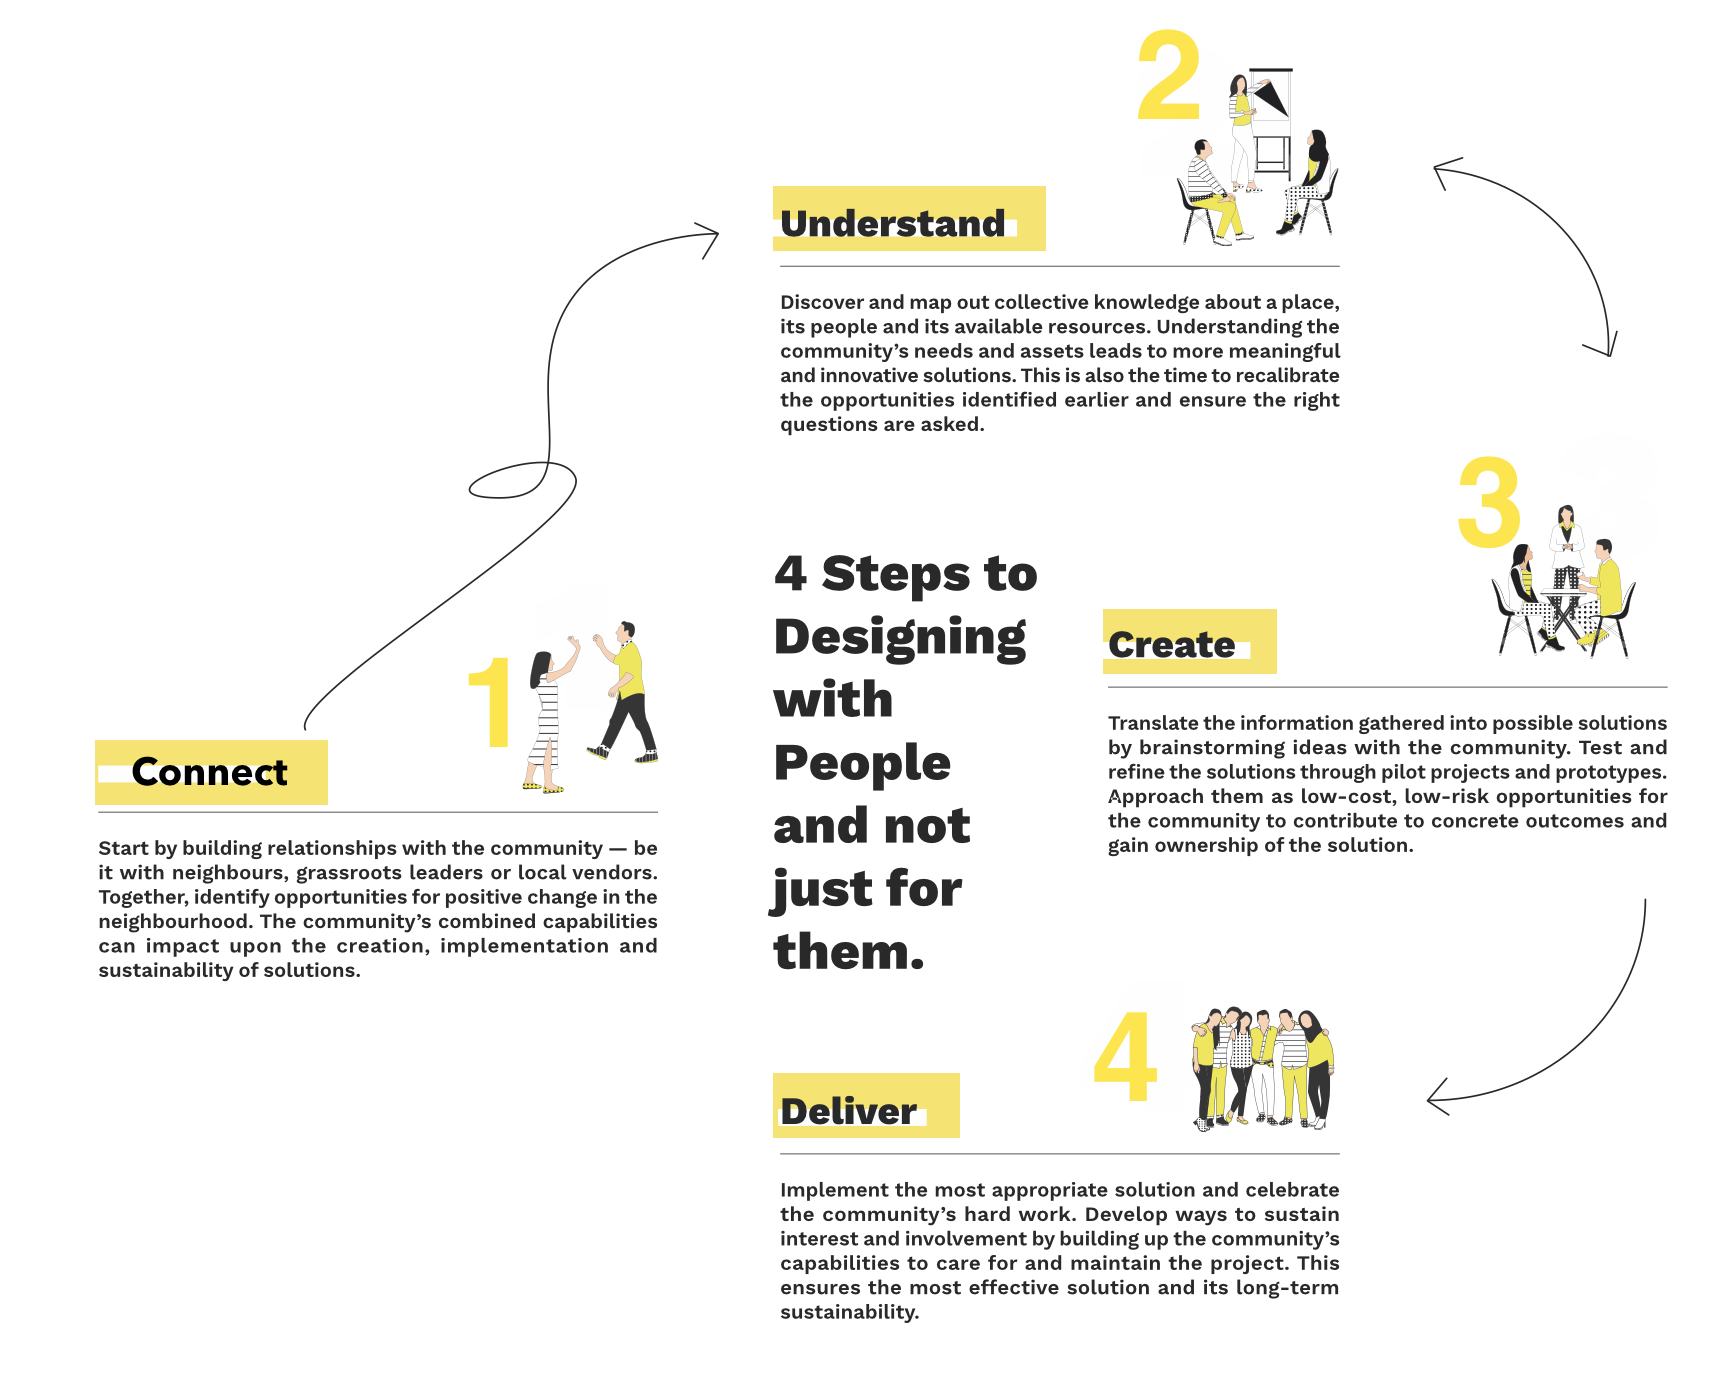 Disagram of the process of co-design which involves connecting, understanding, creating, and delivering.